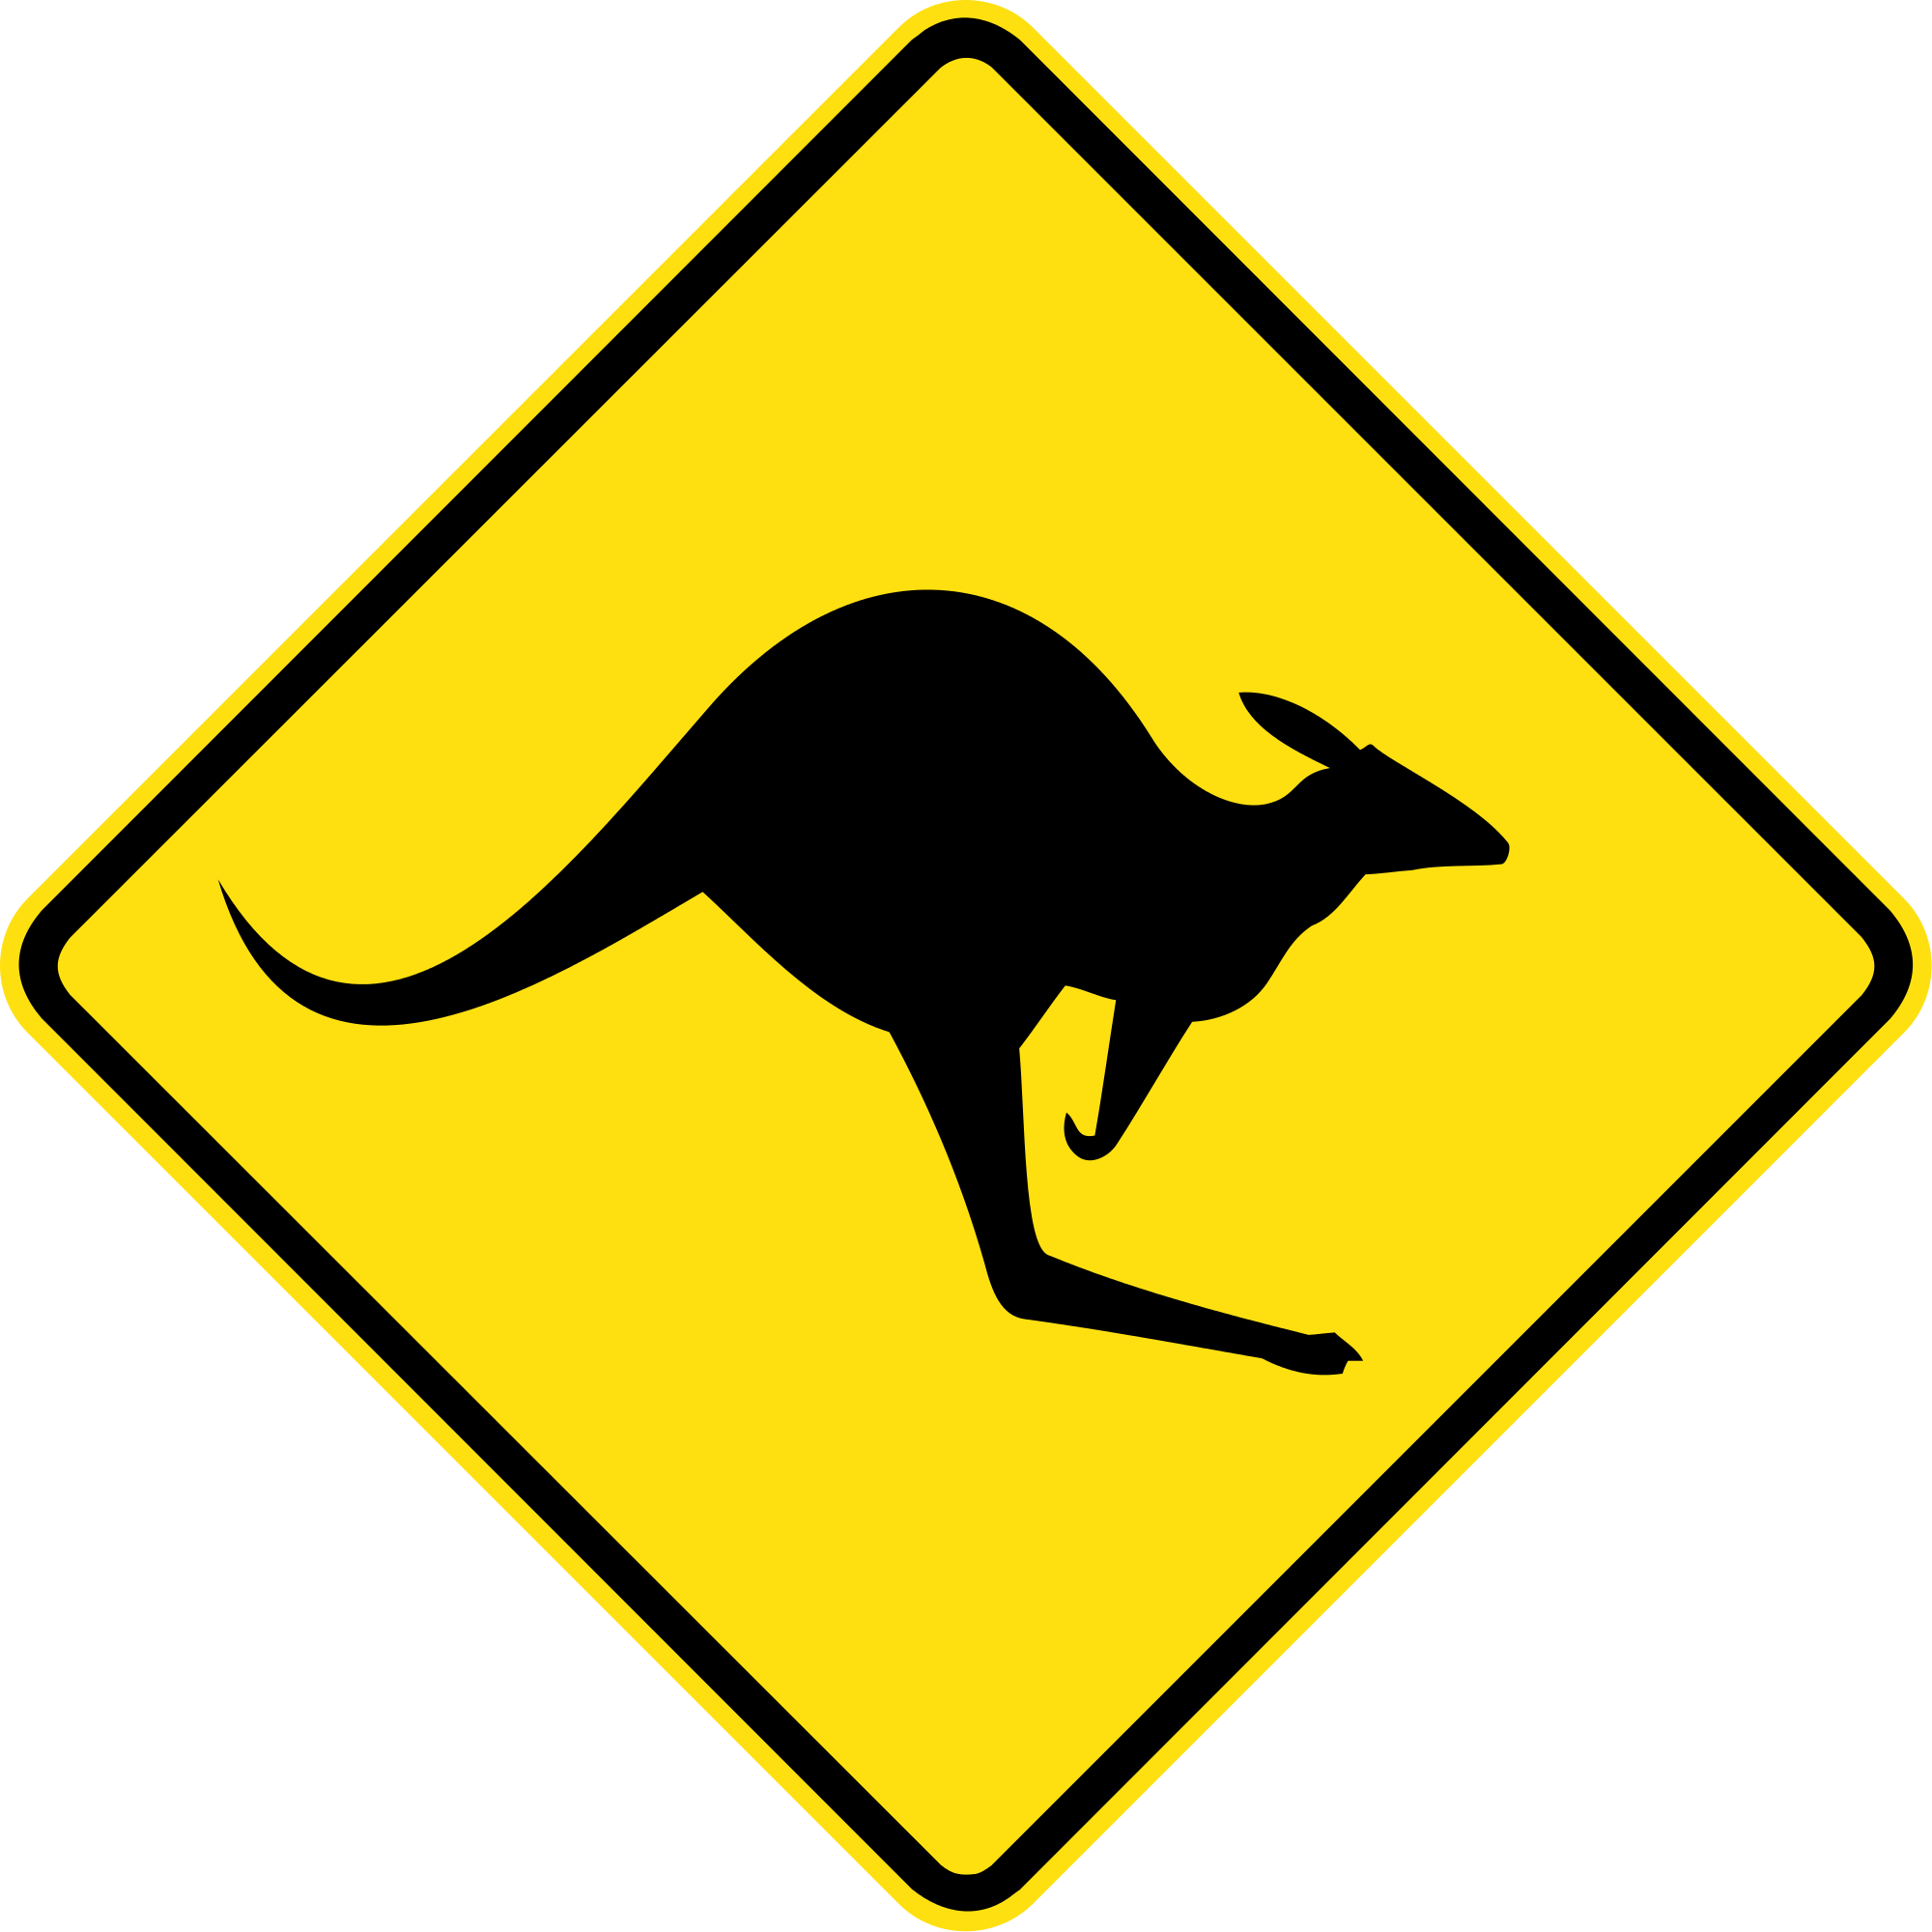 Typical And Unique Aussie Road Signs - ClipArt Best